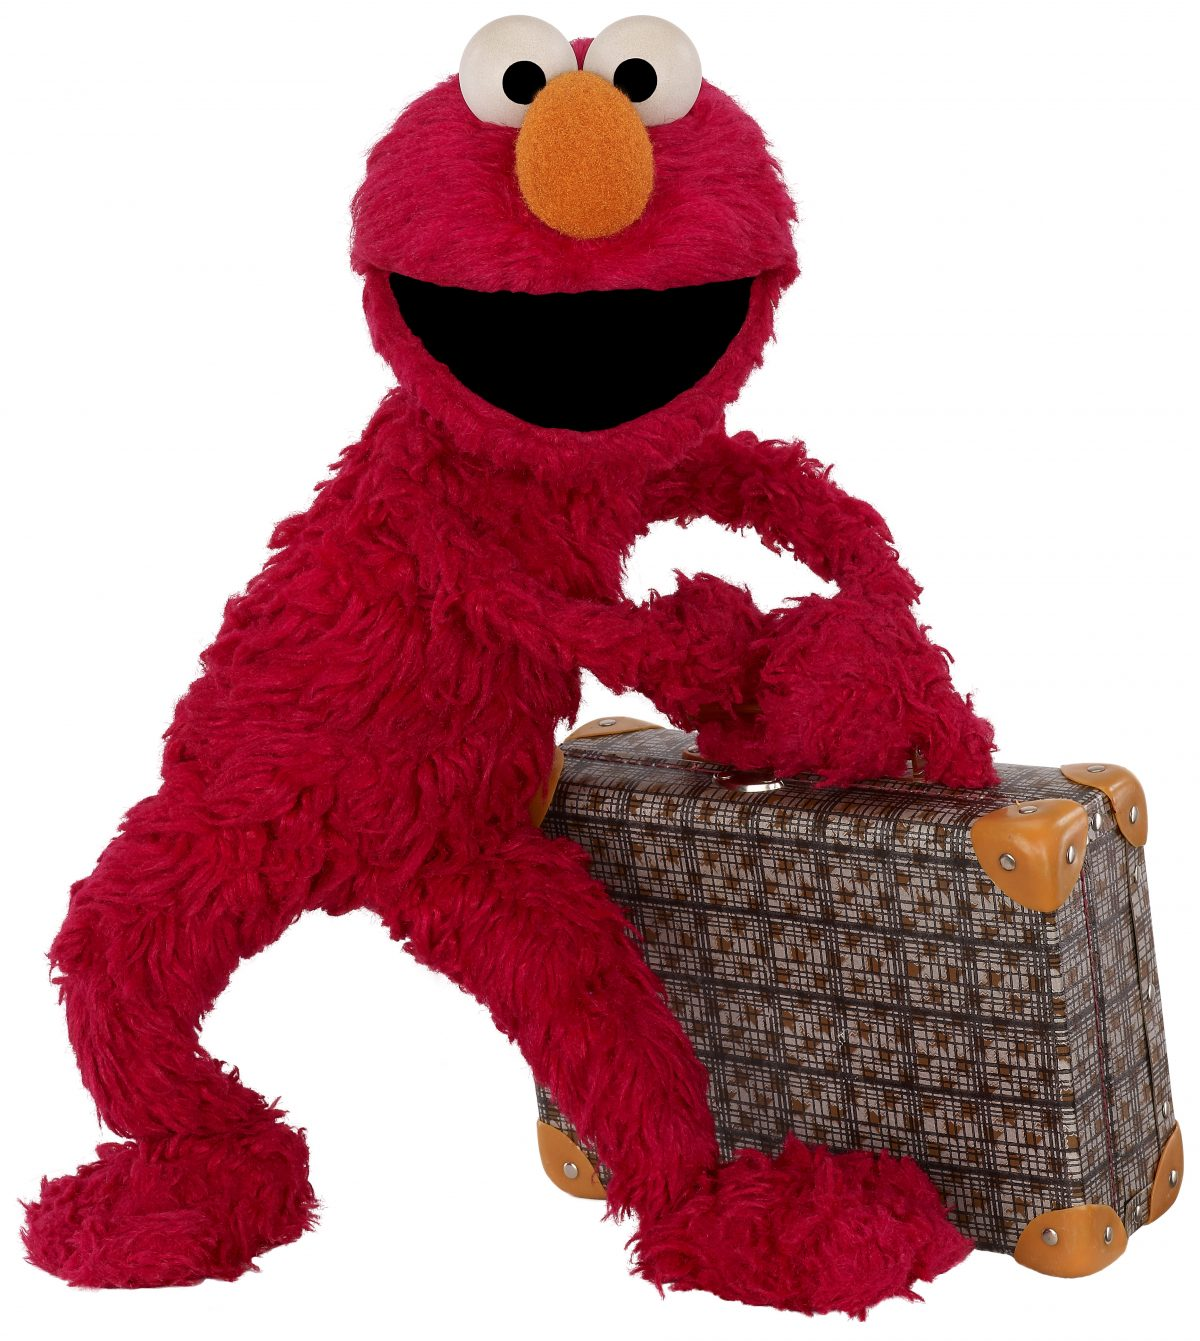 Elmo is cool!